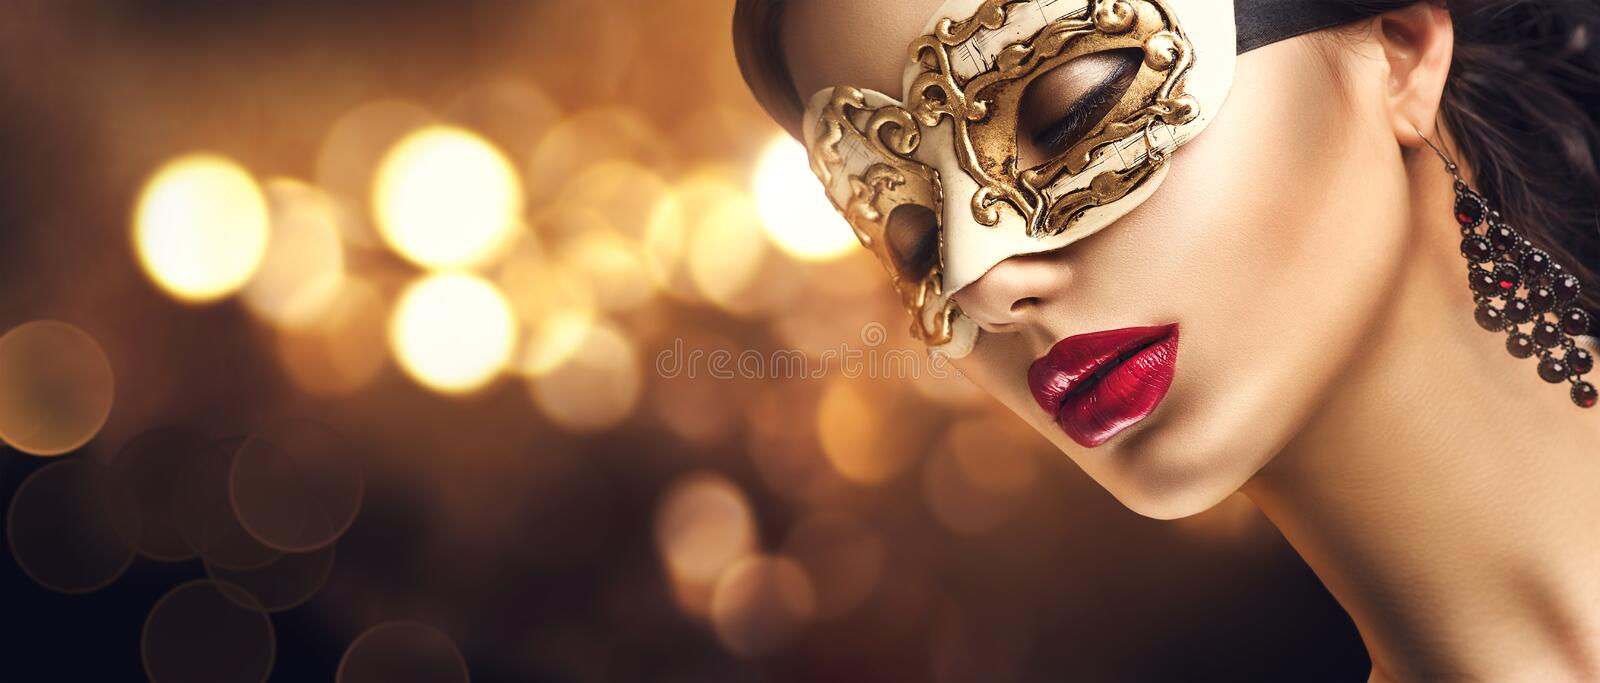 Beauty model woman wearing venetian masquerade carnival mask at party stock photography